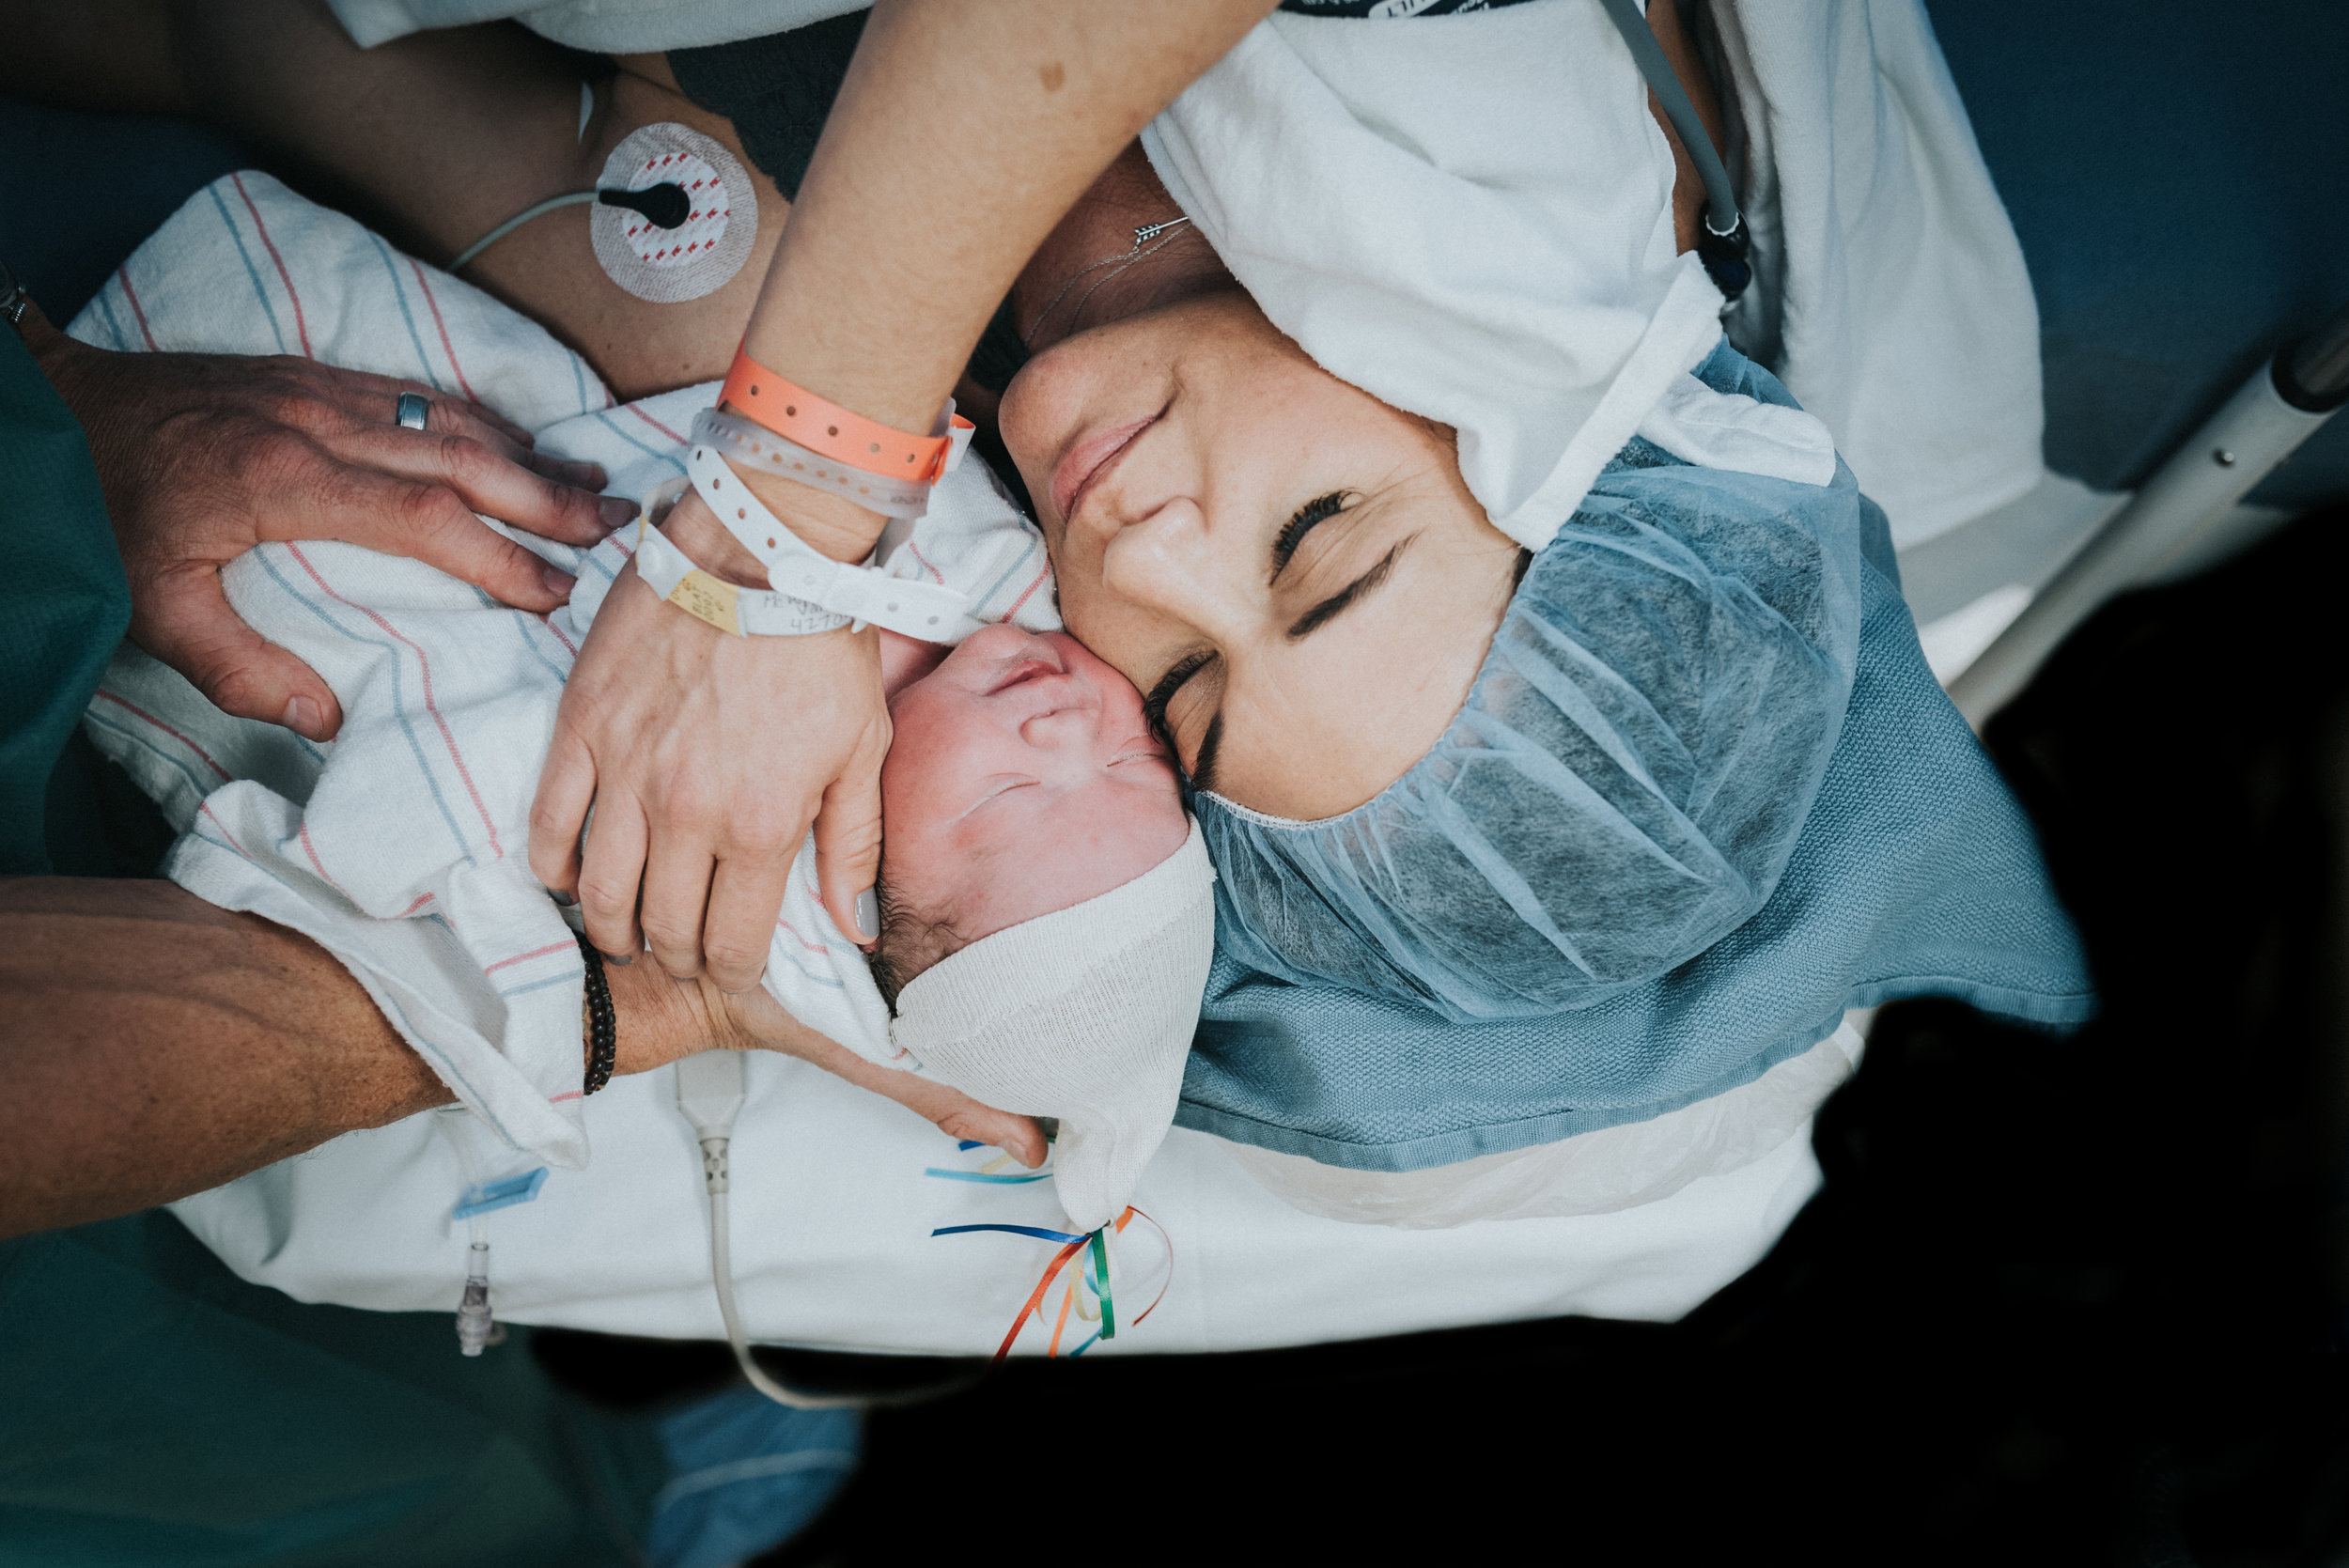 When mother meets baby post cesarean section at Scottsdale Shea Hospital.